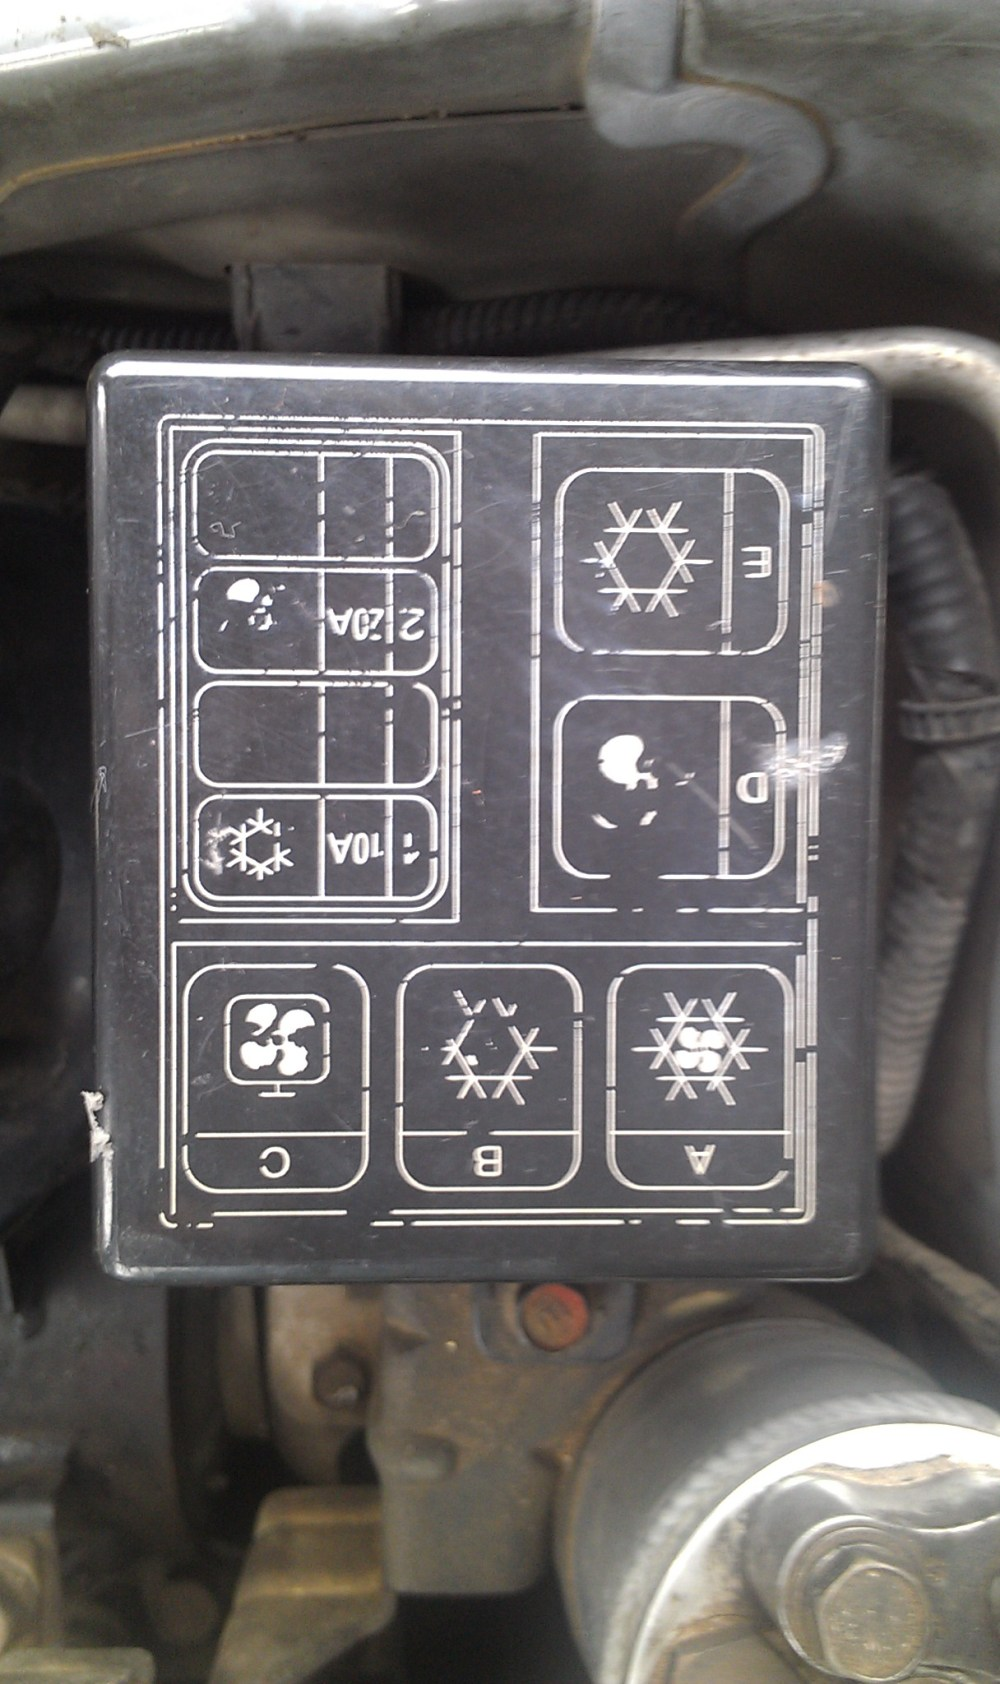 medium resolution of 2011 mitsubishi lancer fuse box diagram